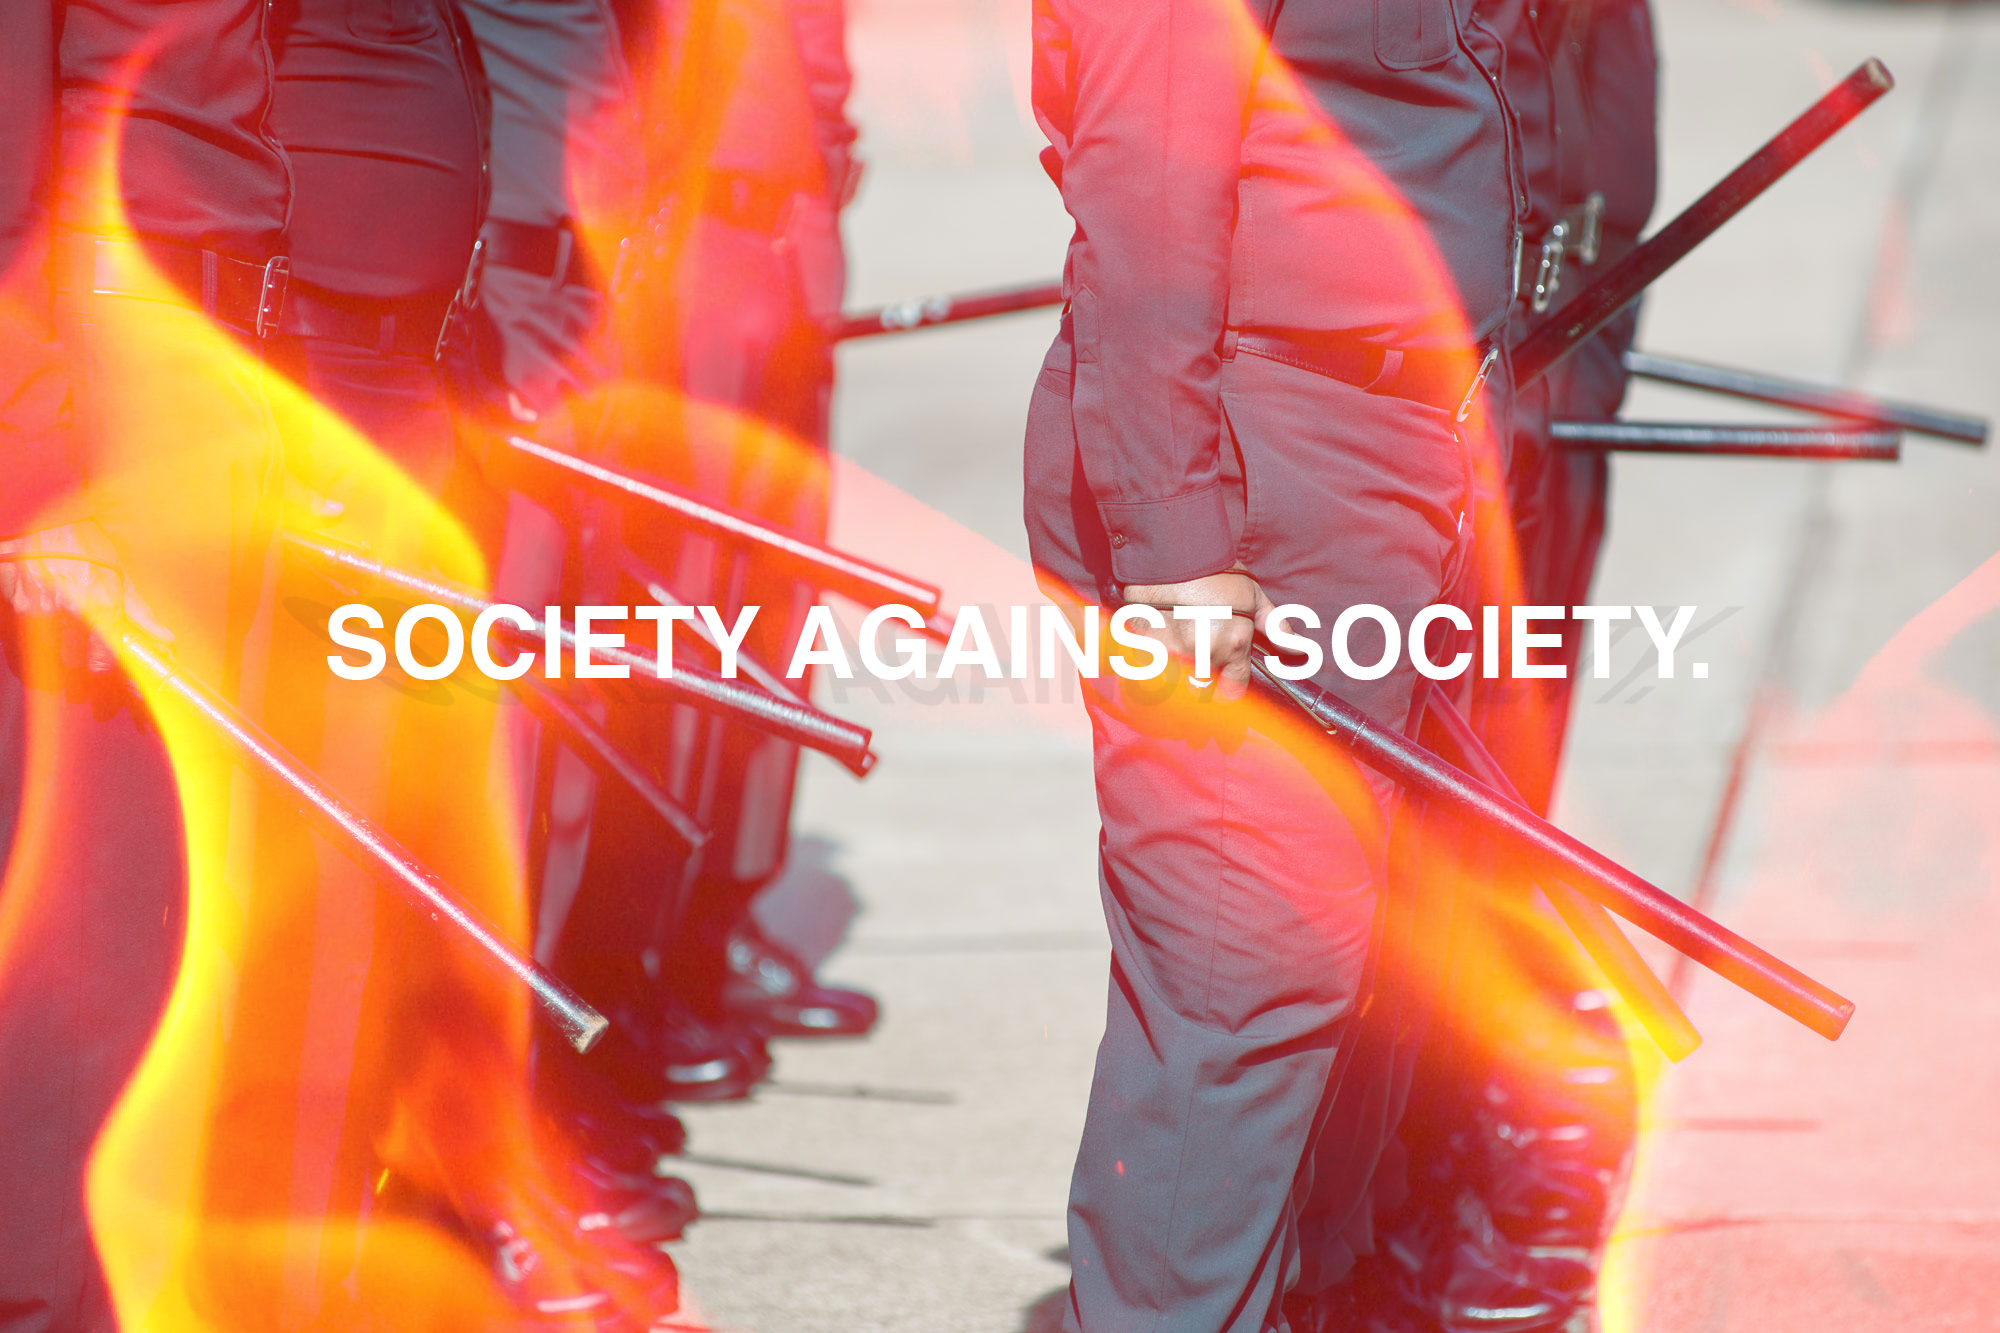 'Society against Society' 2015 - Ethan Solouki